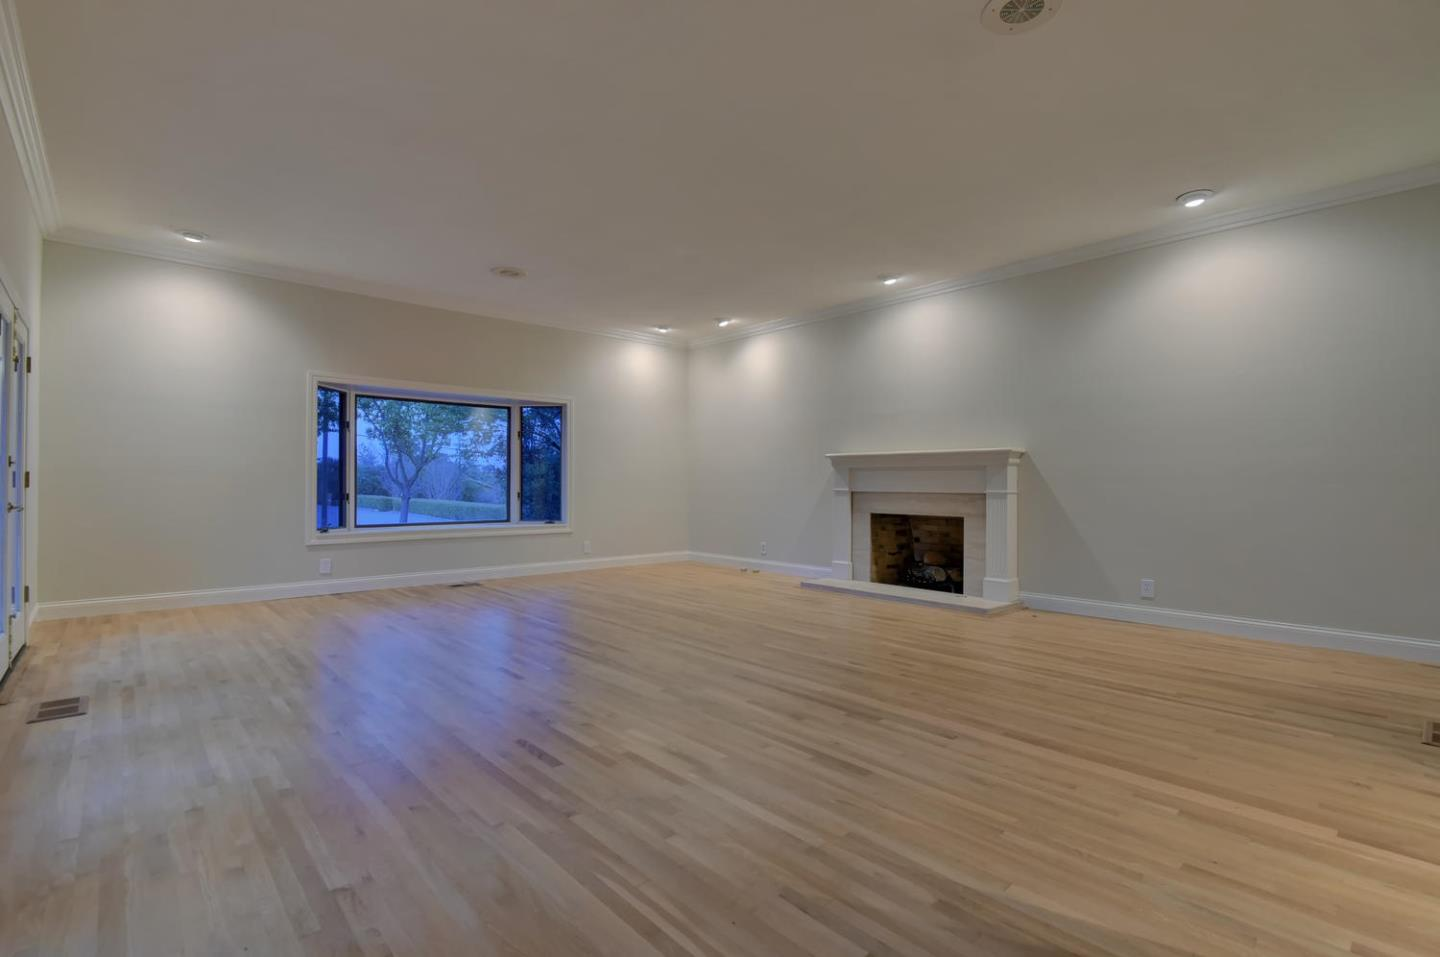 Additional photo for property listing at 17920 Daves Ave  MONTE SERENO, CALIFORNIA 95030